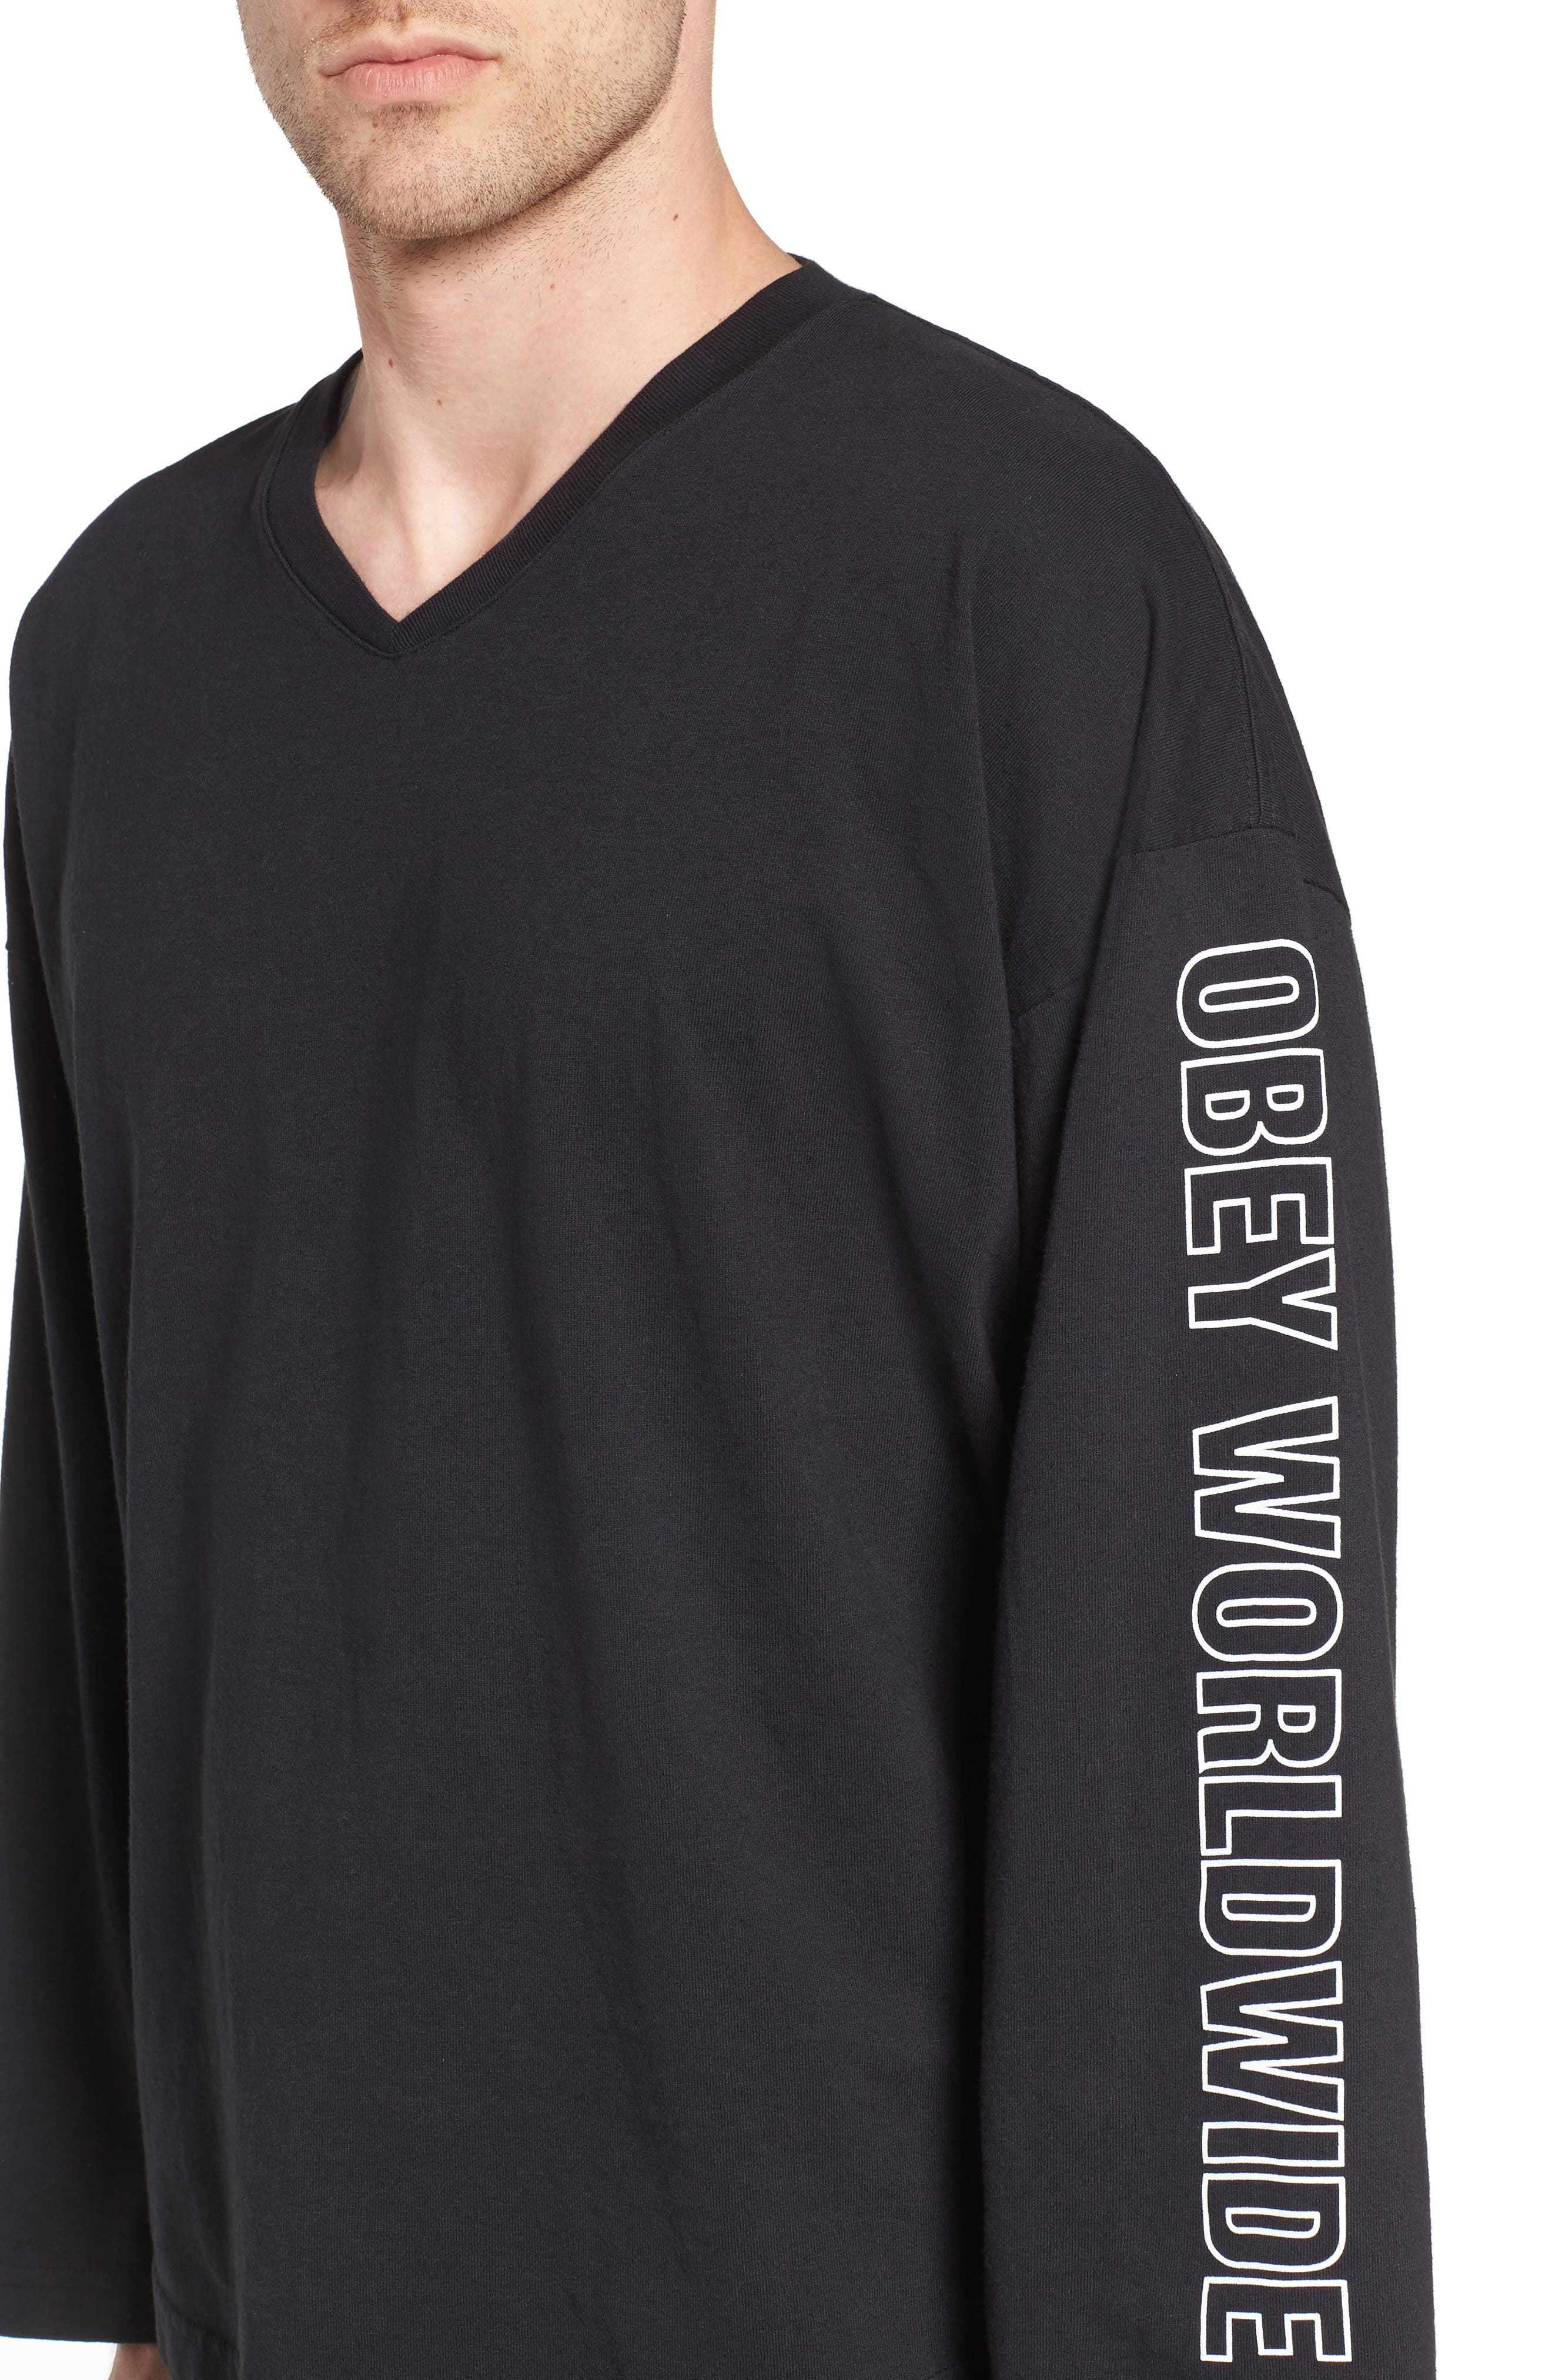 Worldwide Outline Logo Hockey Jersey,                             Alternate thumbnail 4, color,                             Off Black